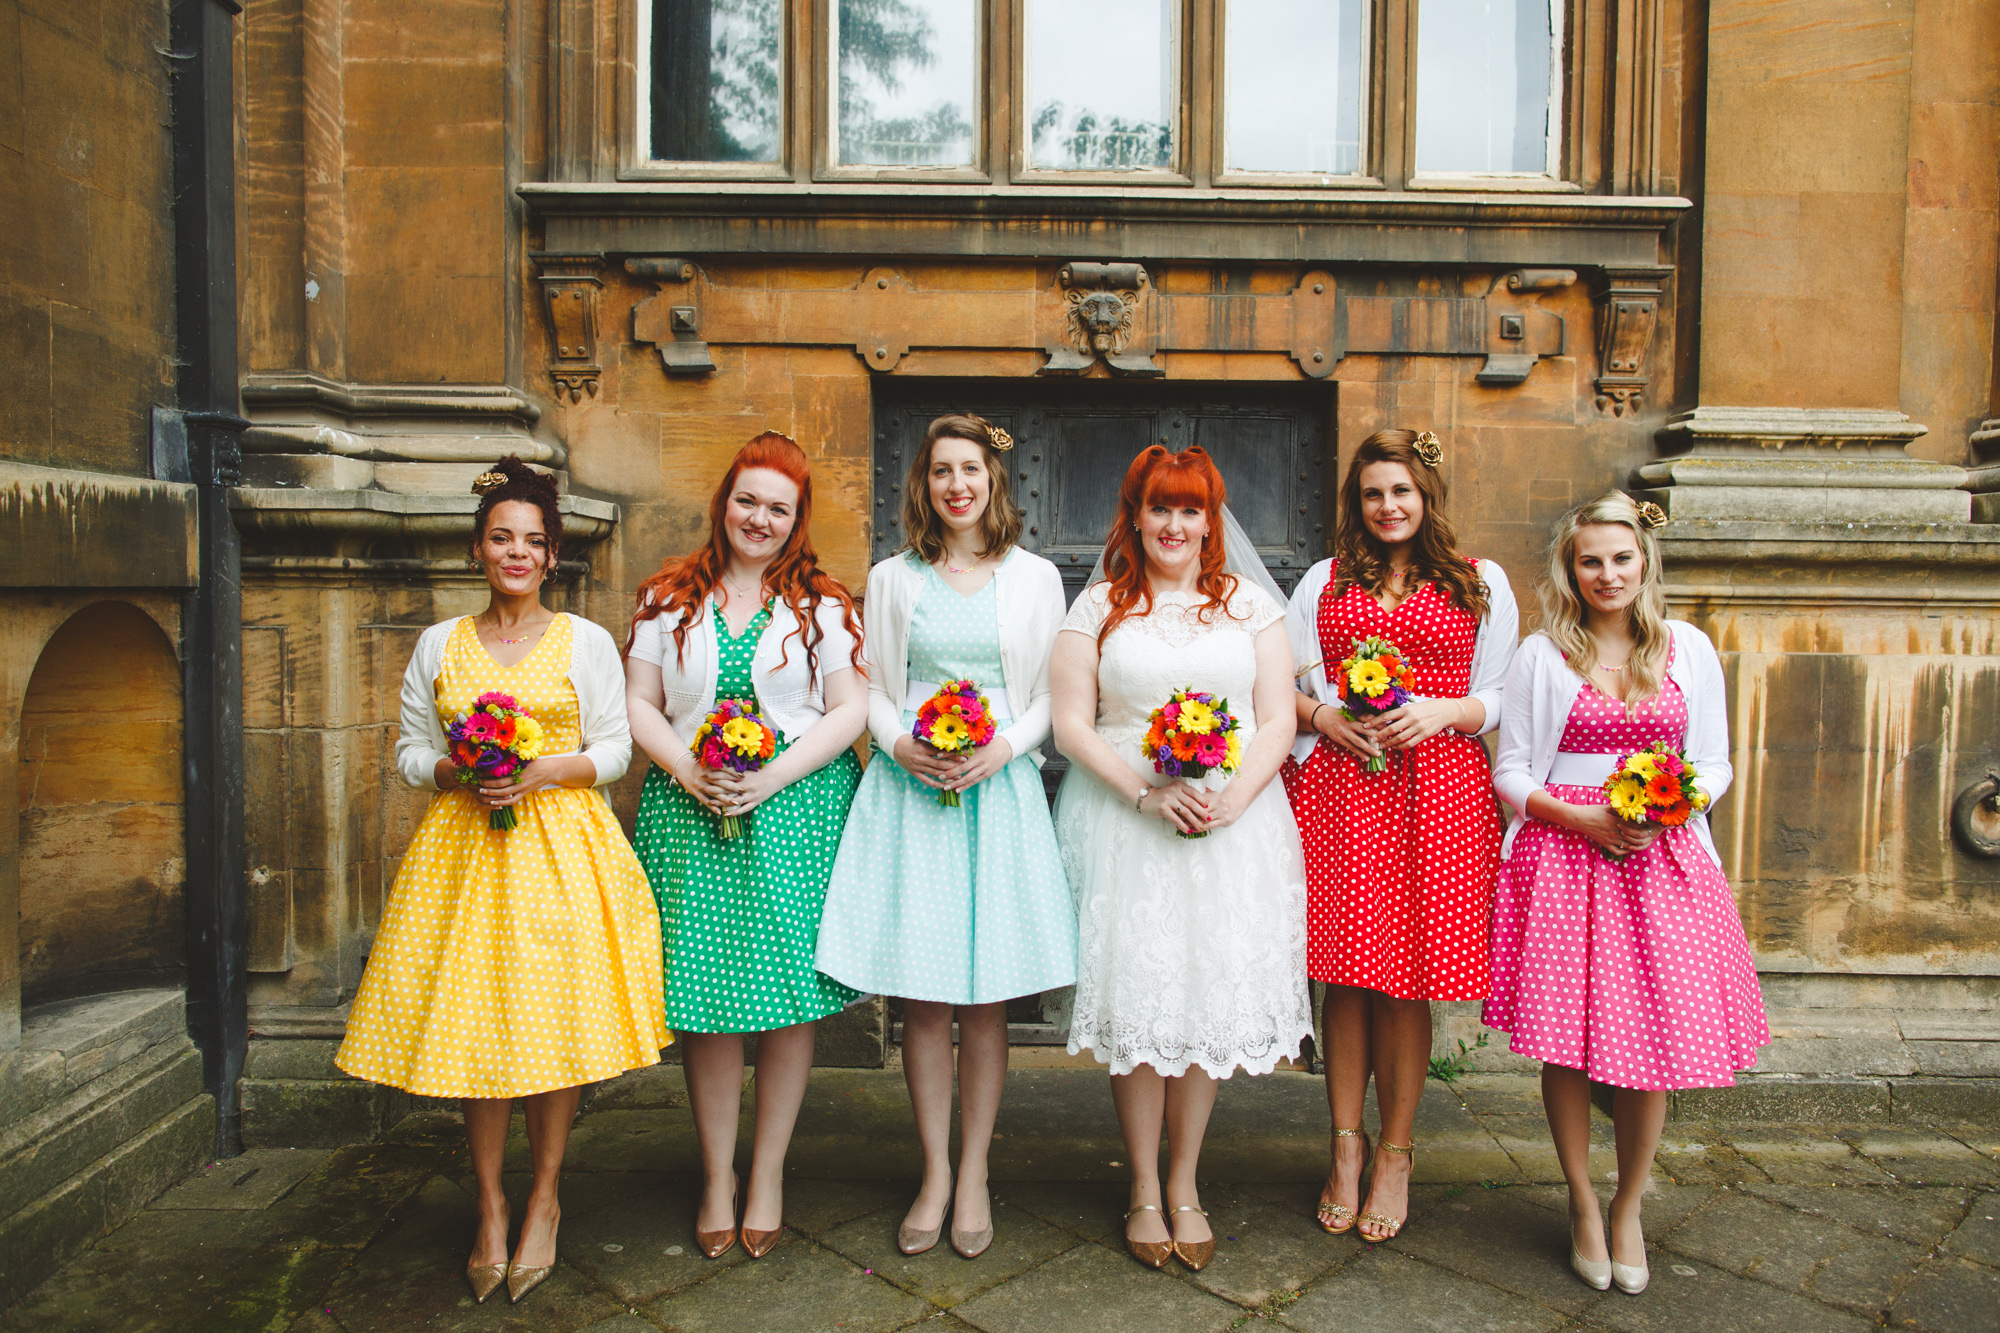 alternative-wedding-photographer-nottingham-camera-hannah-6.jpg